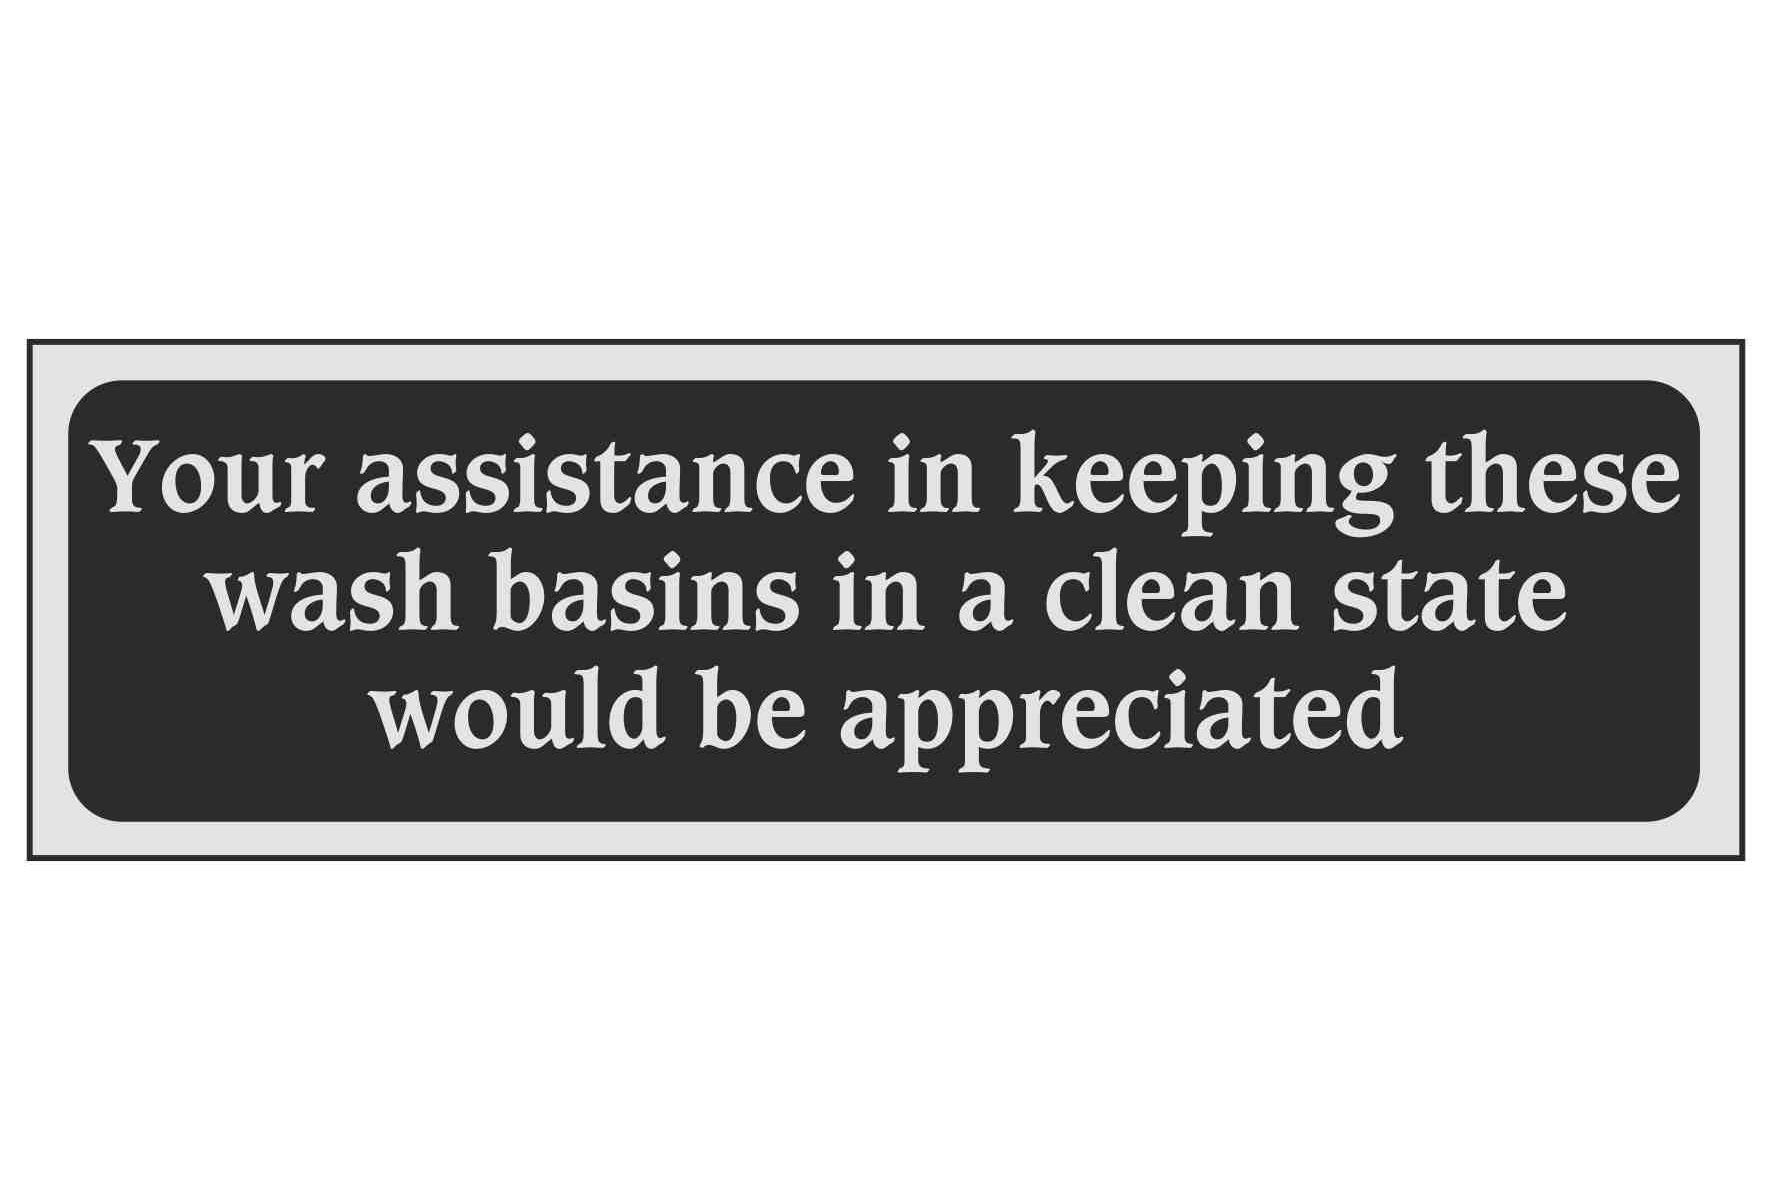 Your assistance in keeping these wash basins in a clean state would be appreciated